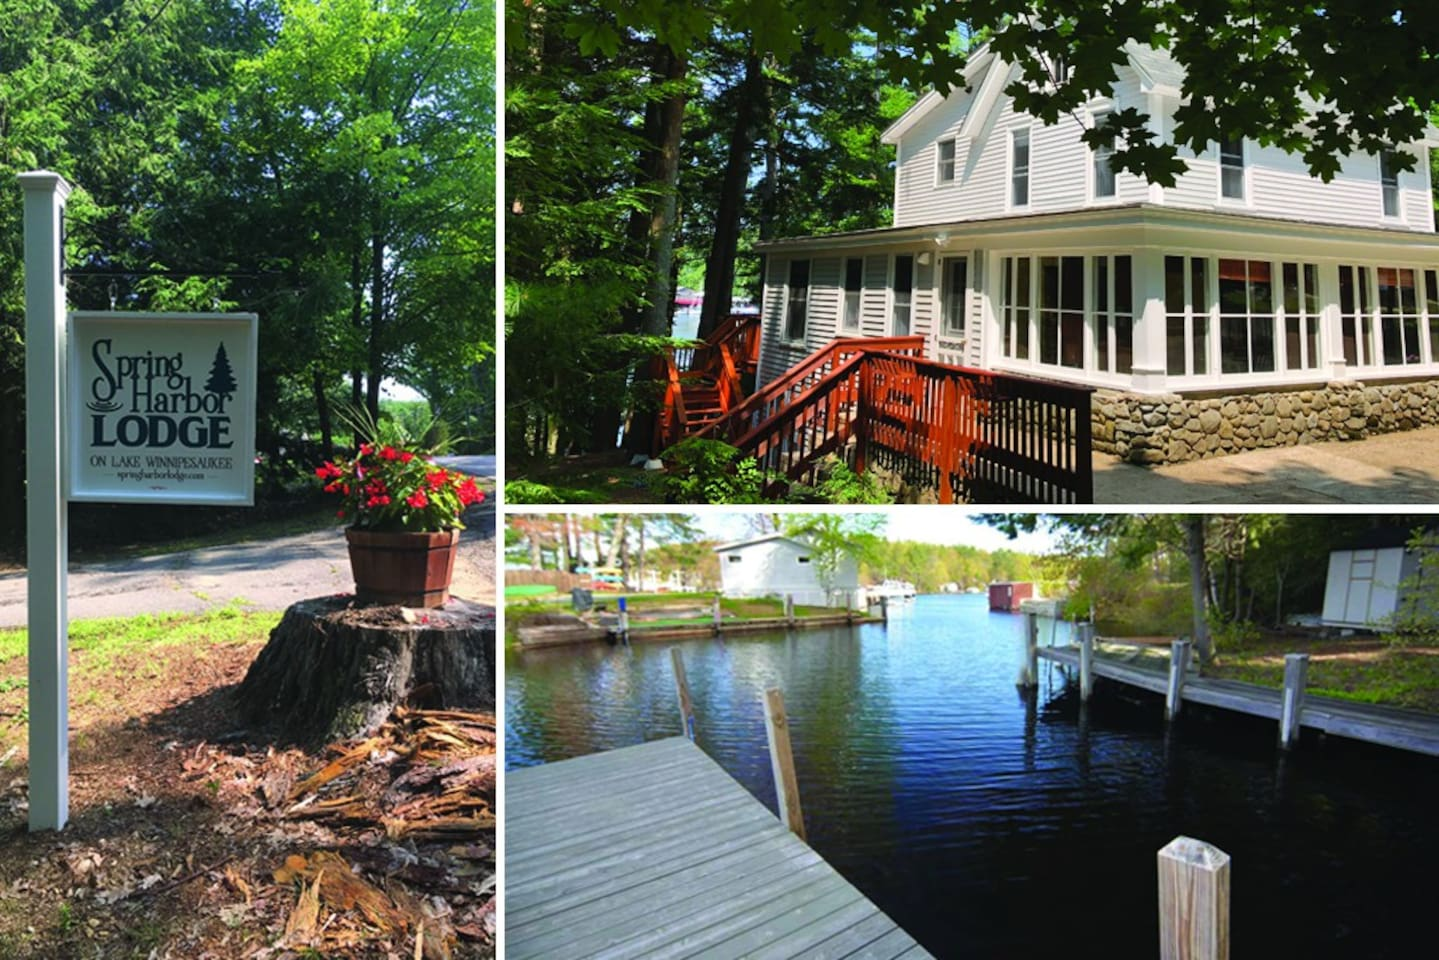 Welcome to Spring Harbor Lodge on Lake Winnipesaukee!